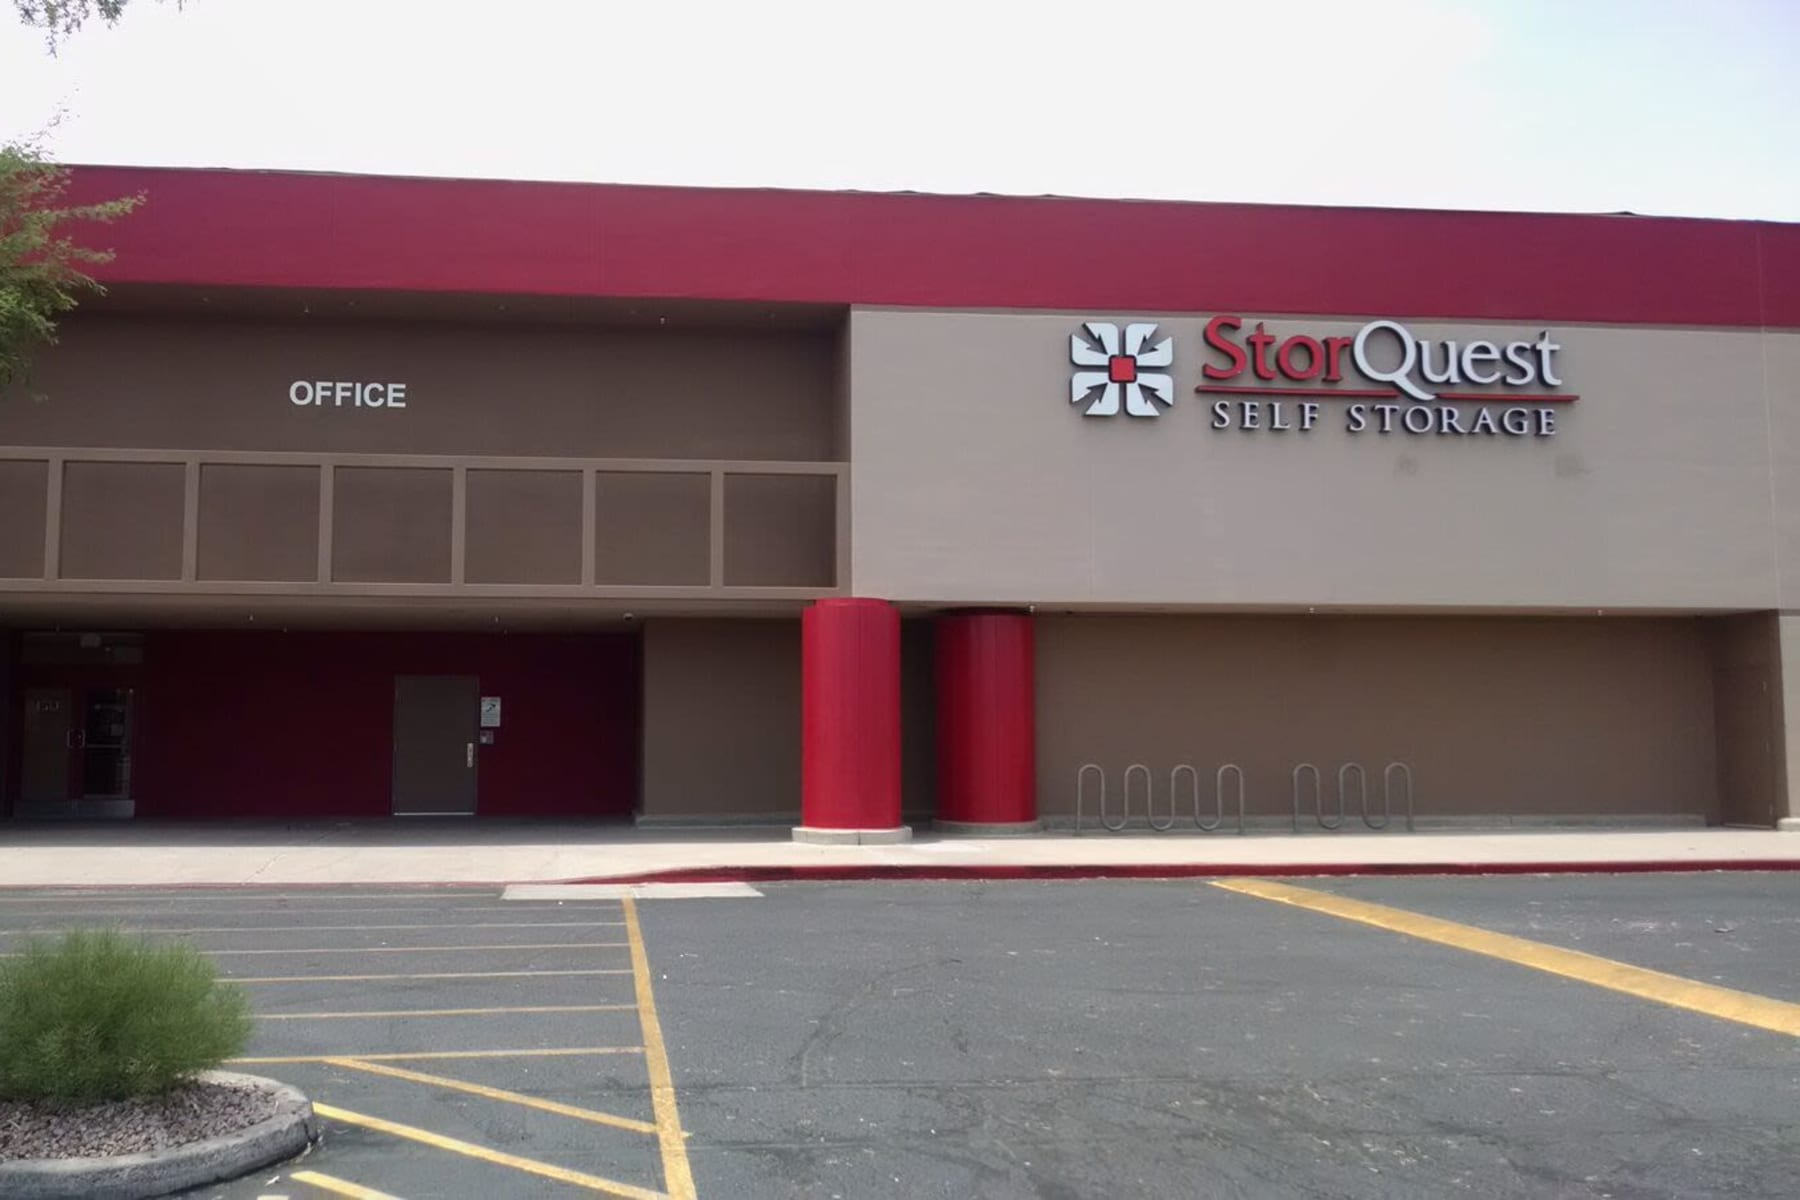 Rendering of StorQuest Self Storage in Chandler, Arizona